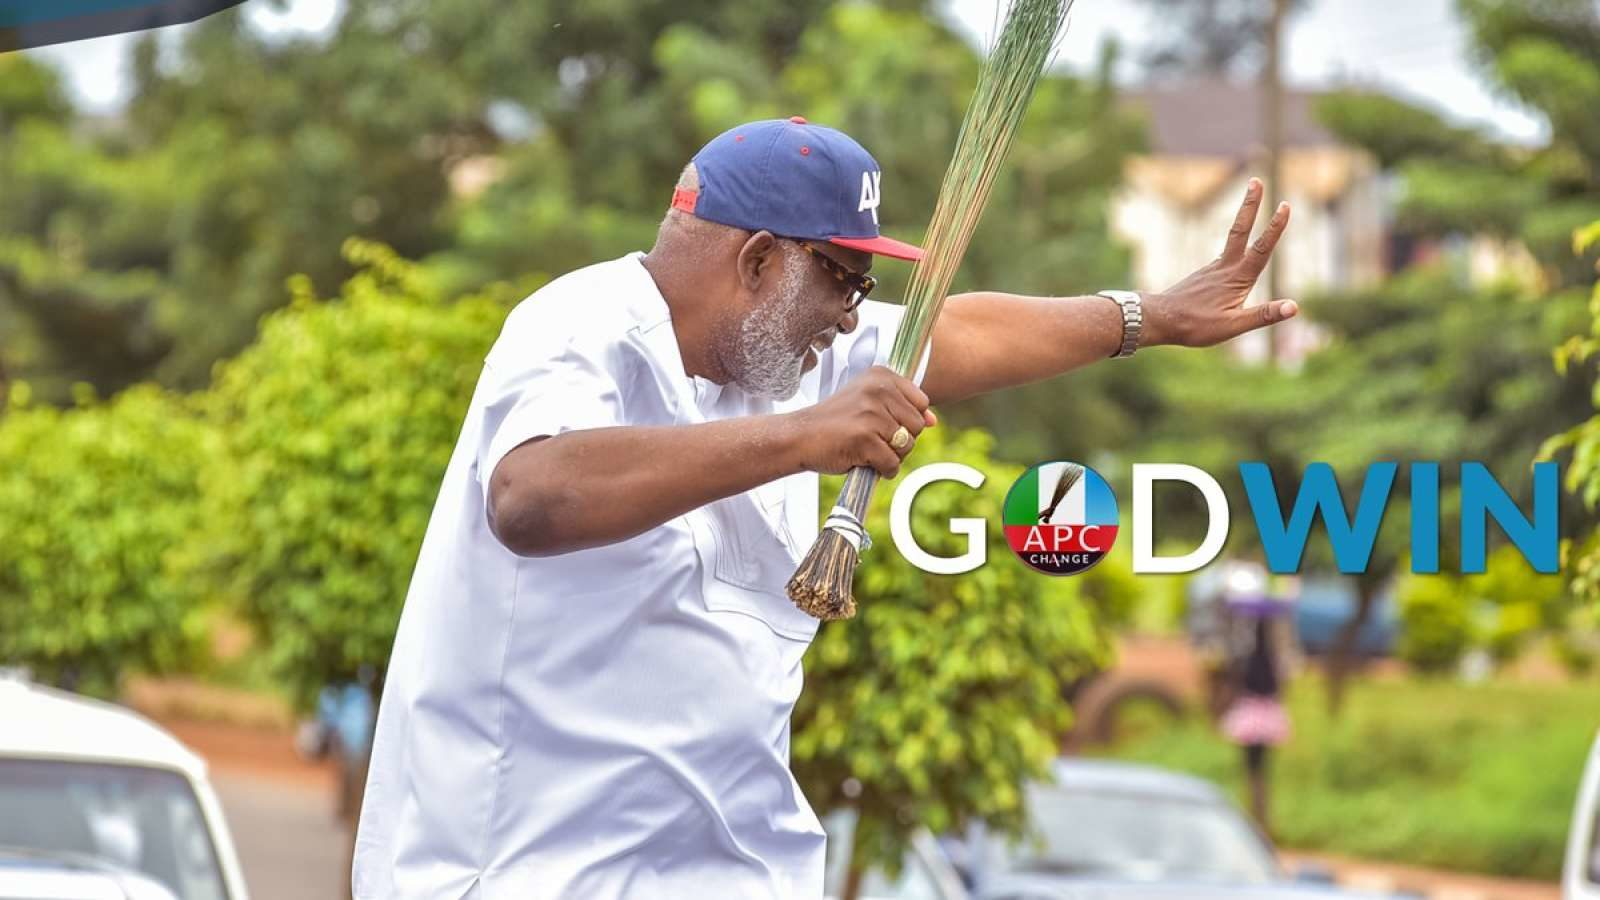 Ondo Poll: It may not be easy to beat Jegede- Akeredolu